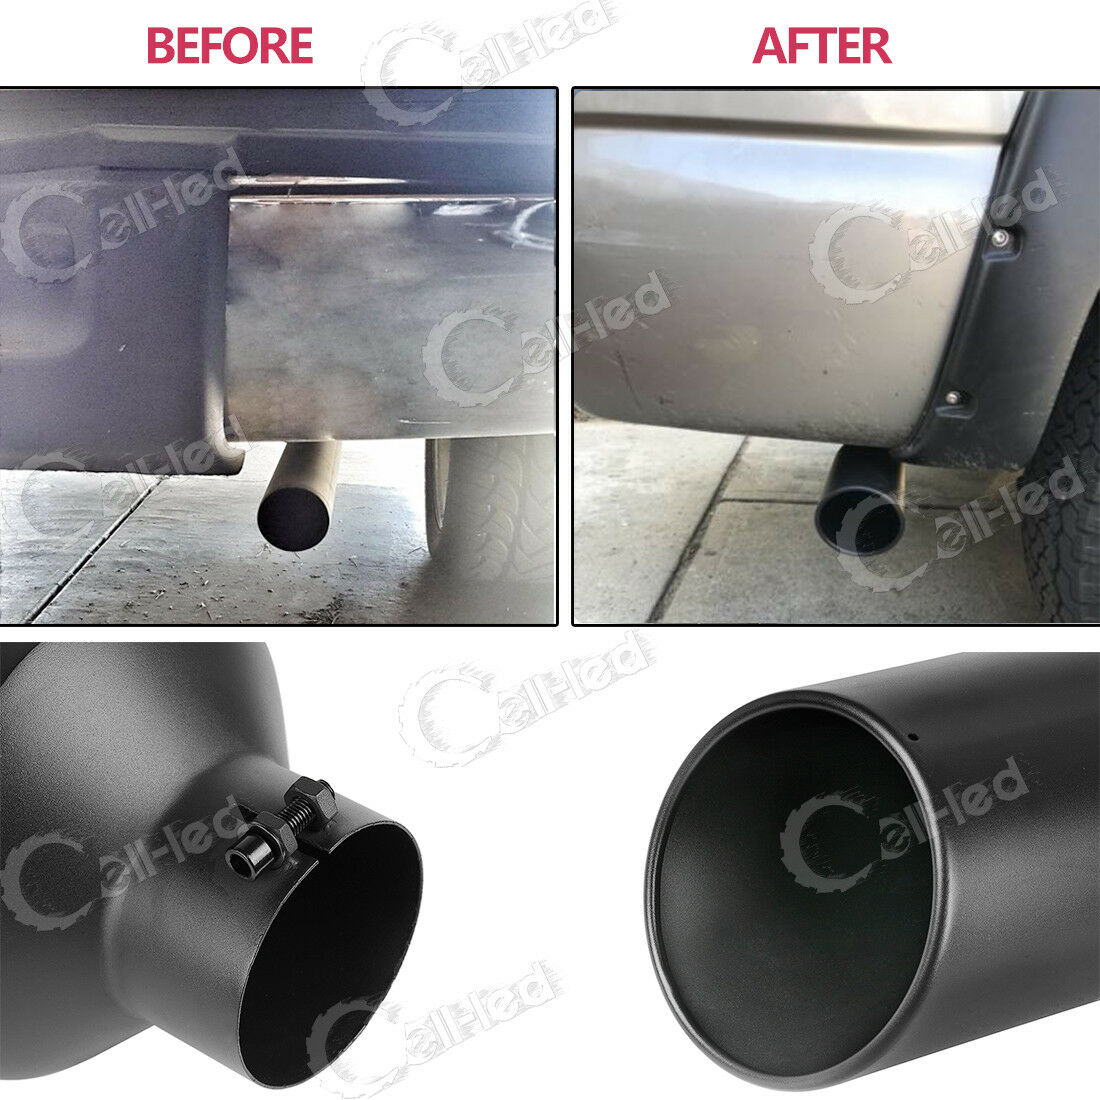 Chrome-Plated Finish Stainless Steel Material And a 3 1//2 Inch Inlet 12 Inch Long Autosaver88 3.5 Inch Inlet With a Turn Down Exhaust Tip Bolt-On Installation Design.